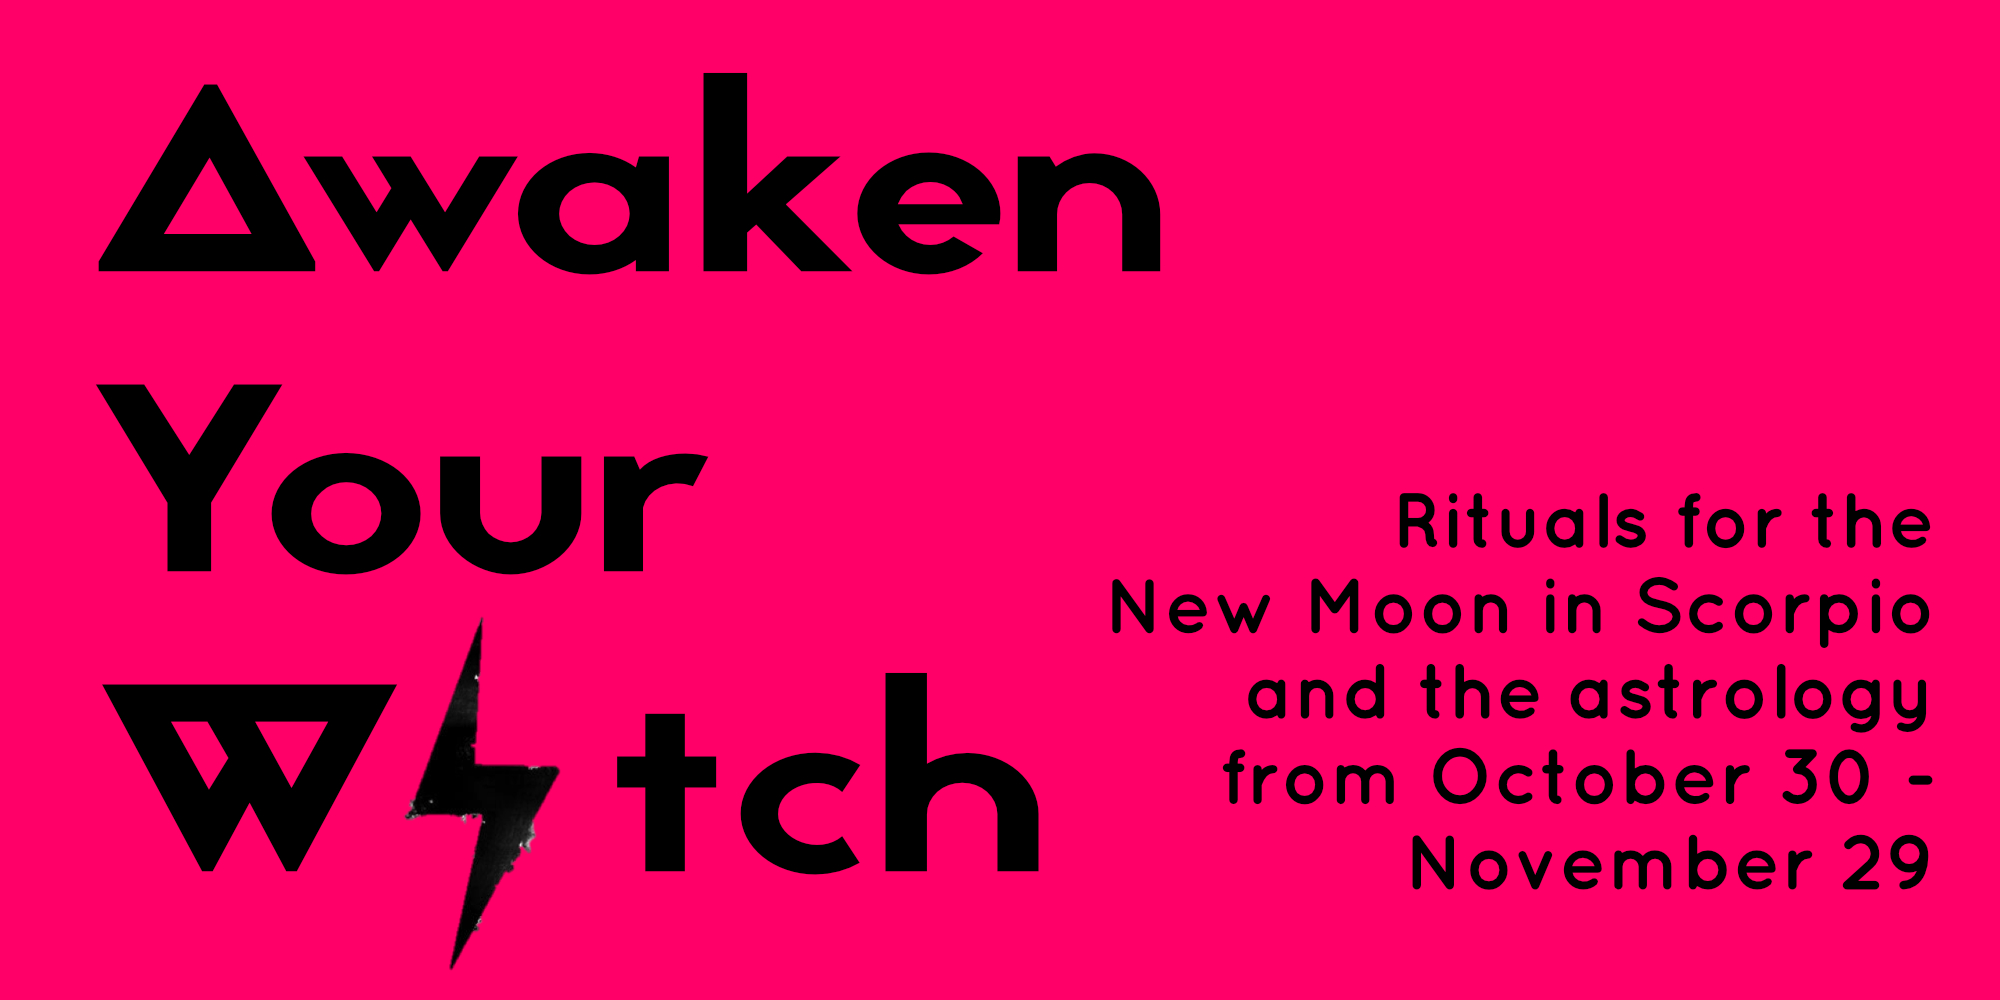 Awaken Your Witch: Rituals for the New Moon in Scorpio and the